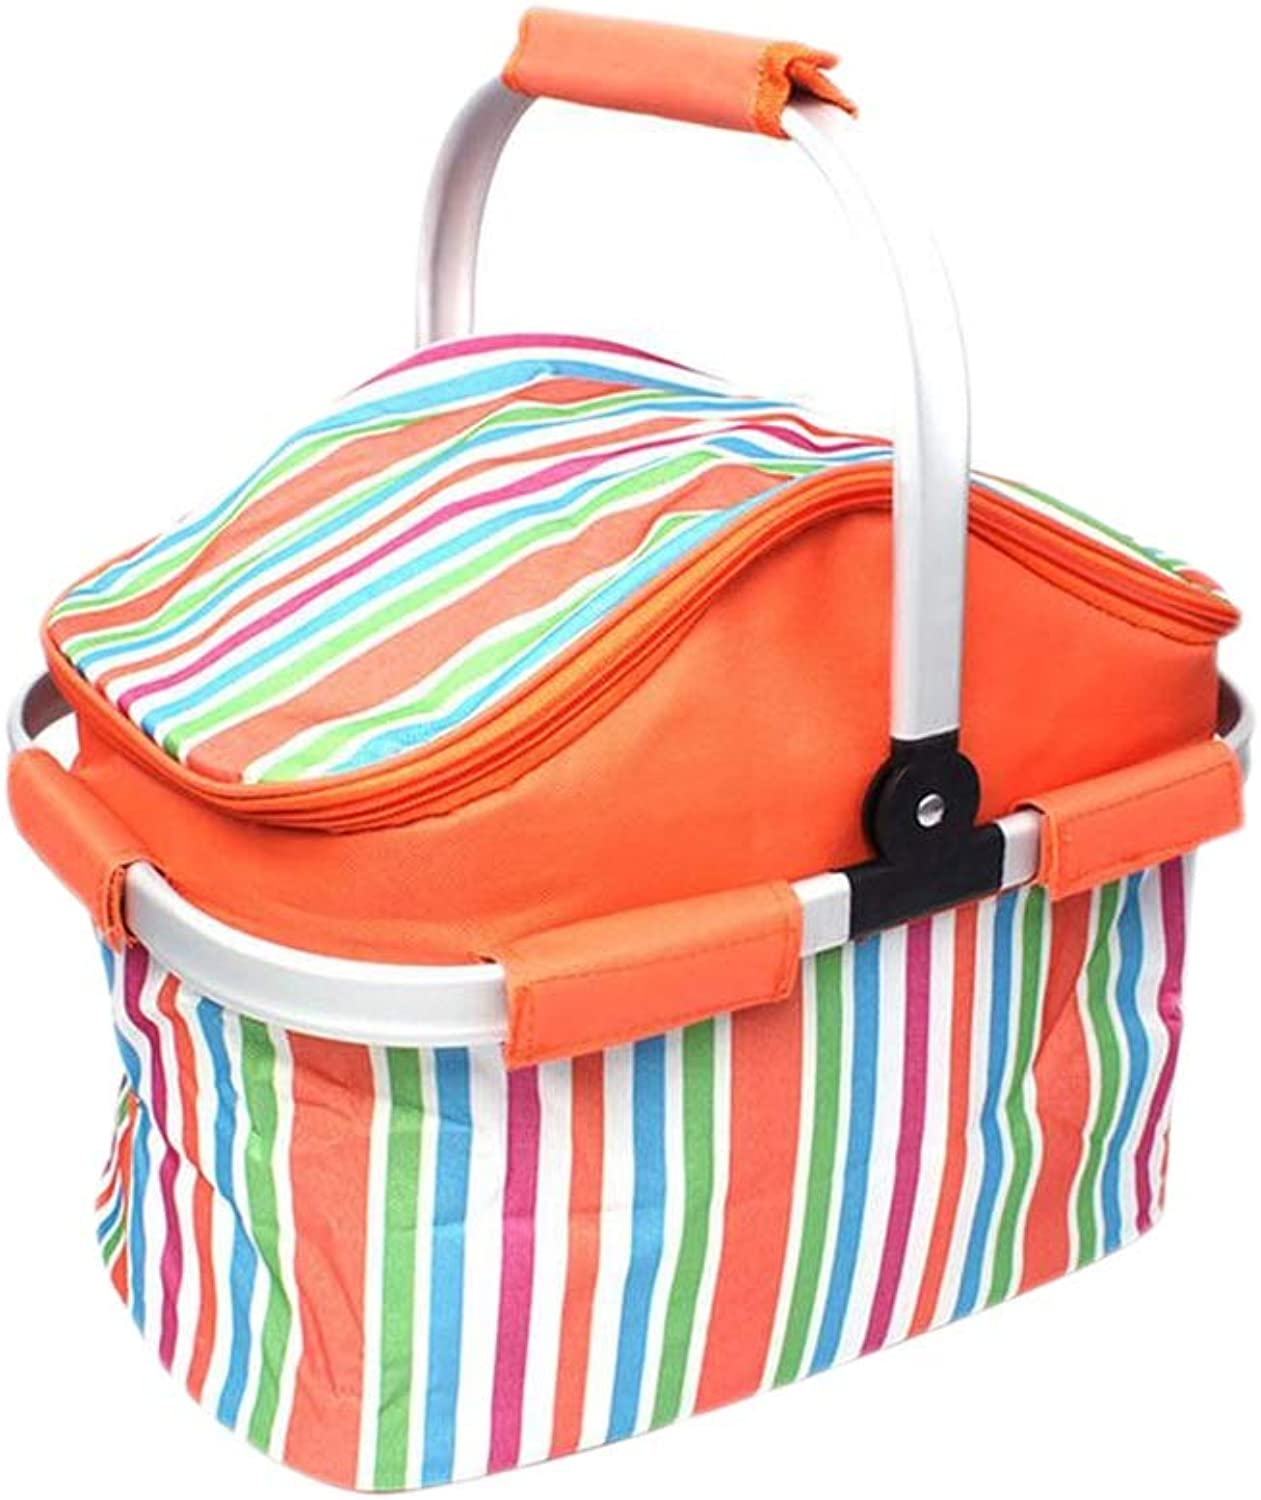 Folding Picnic Baskets Insulated Portable Cooler Lunch Bags Tote Aluminum Carry Handles Outdoor Camping Hiking Travel Picnic Bags 20L (color   orange, Size   15.75  9.84  12.6inchs)